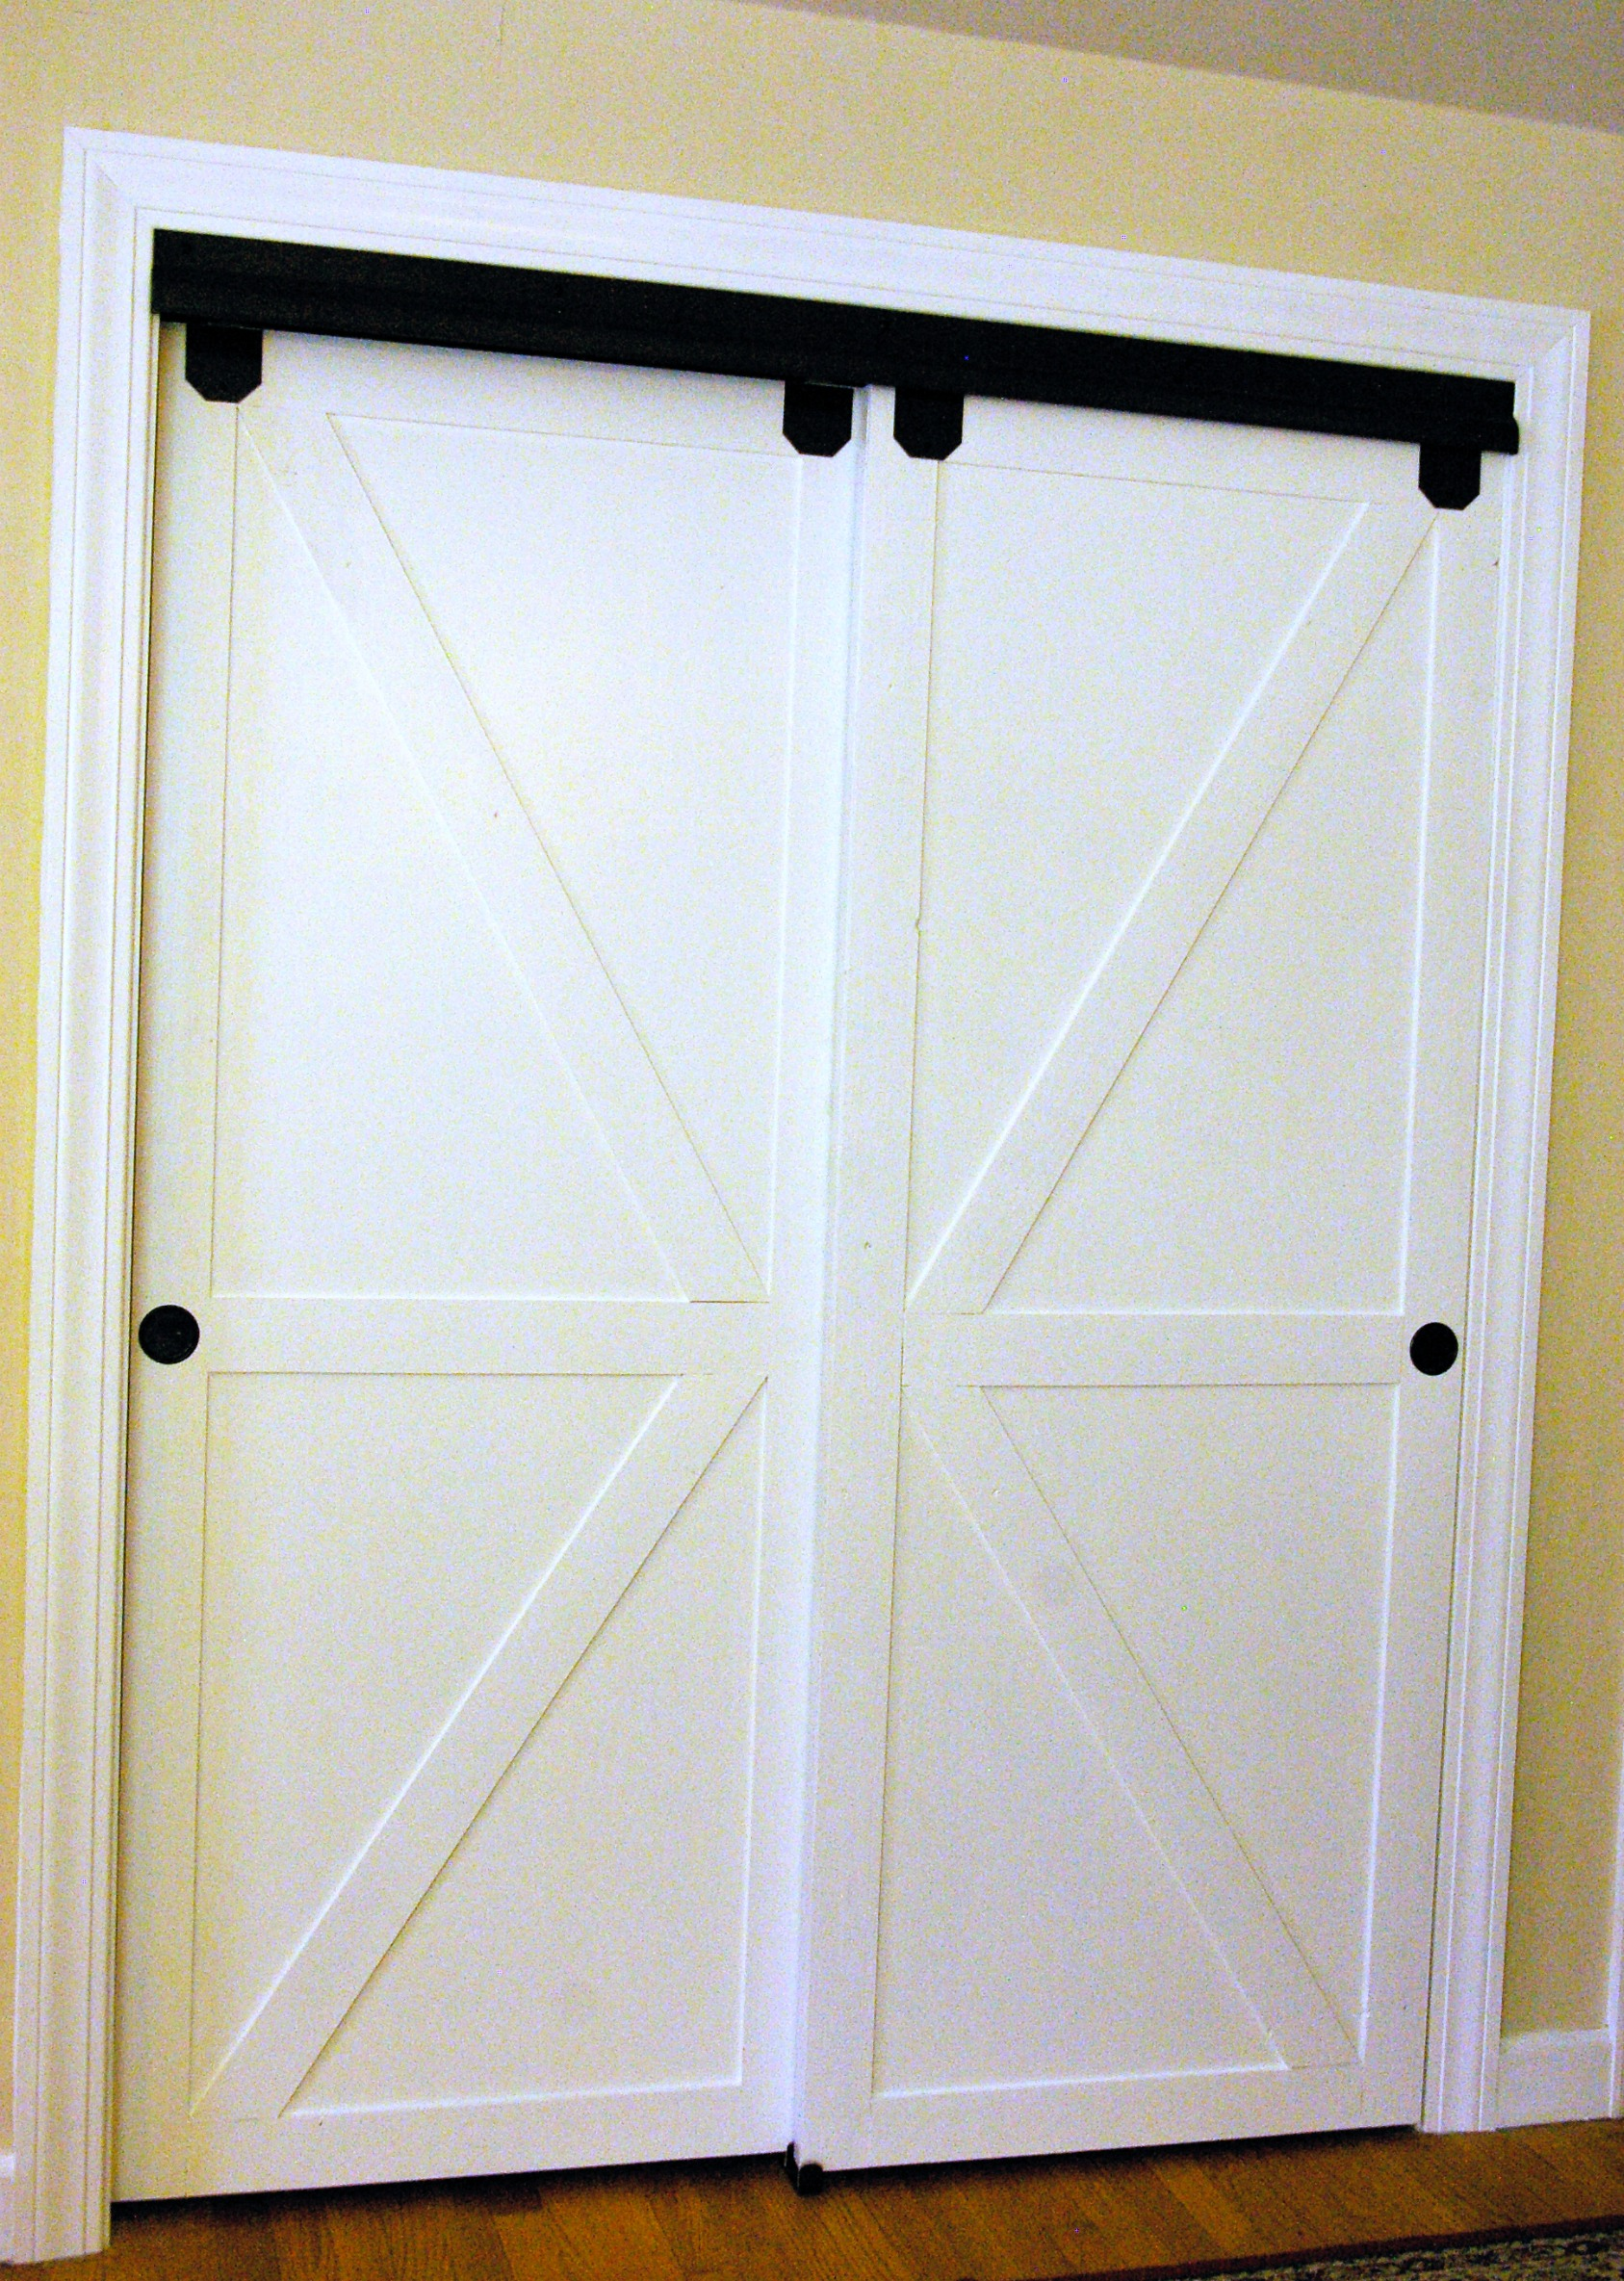 Diy Faux Barn Doors On A Sliding Bypass Closet Door 02 Featured On @Remodelaholic Edit & Remodelaholic | How to Make Bypass Closet Doors Into Sliding Faux ... pezcame.com